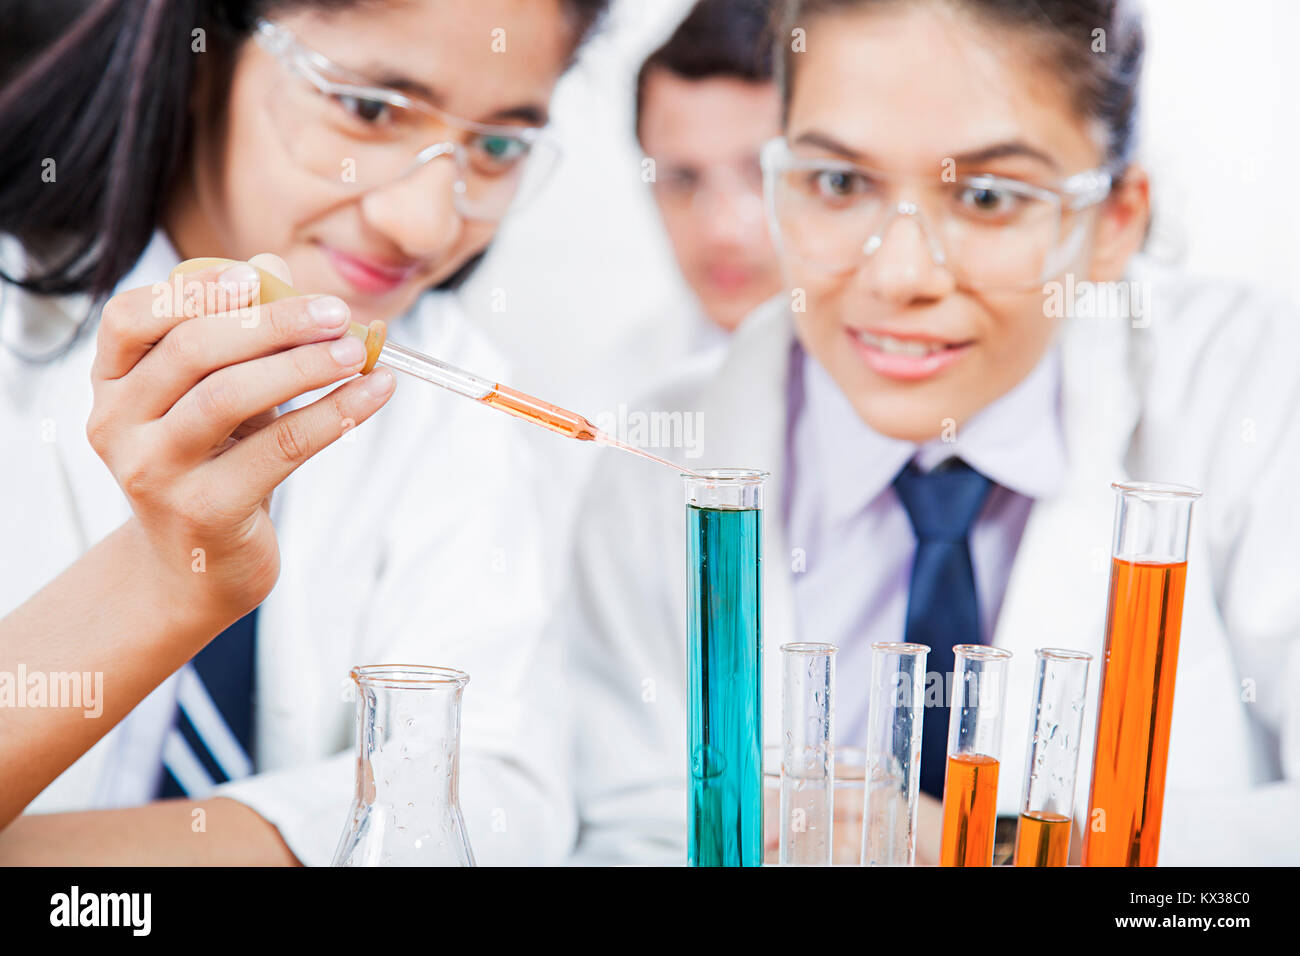 2 Indian School Girls Students Research Chemical Liquid Science Lab